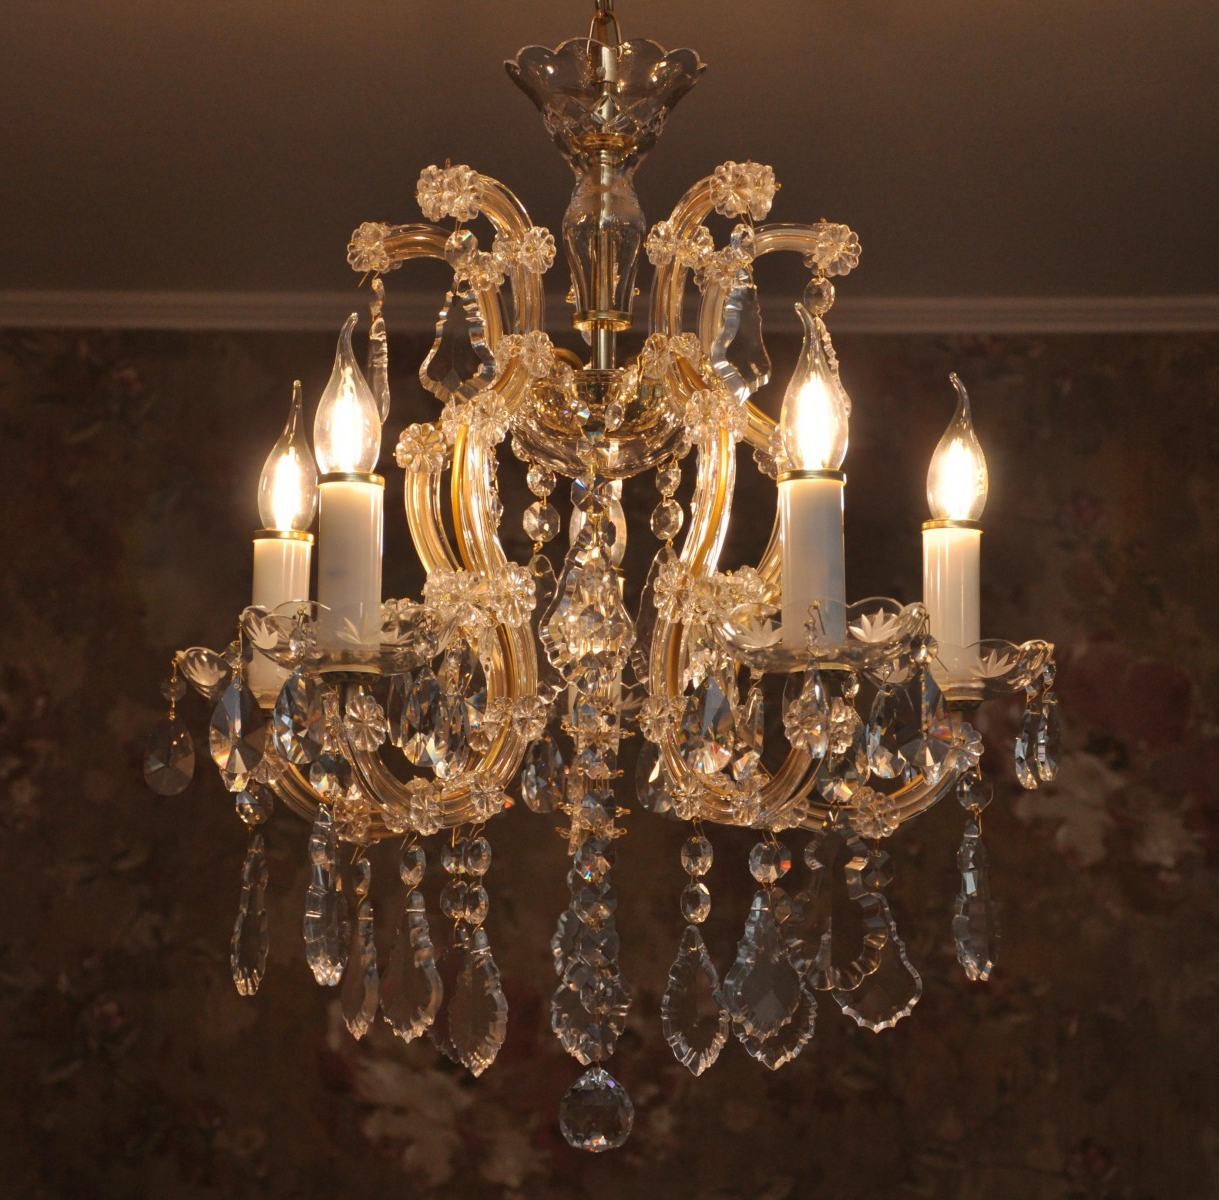 5 Flames Maria Theresa Crystal Chandelier With Pendeloques & Decorated  Bobeches inside Fashionable Thresa 5-Light Shaded Chandeliers